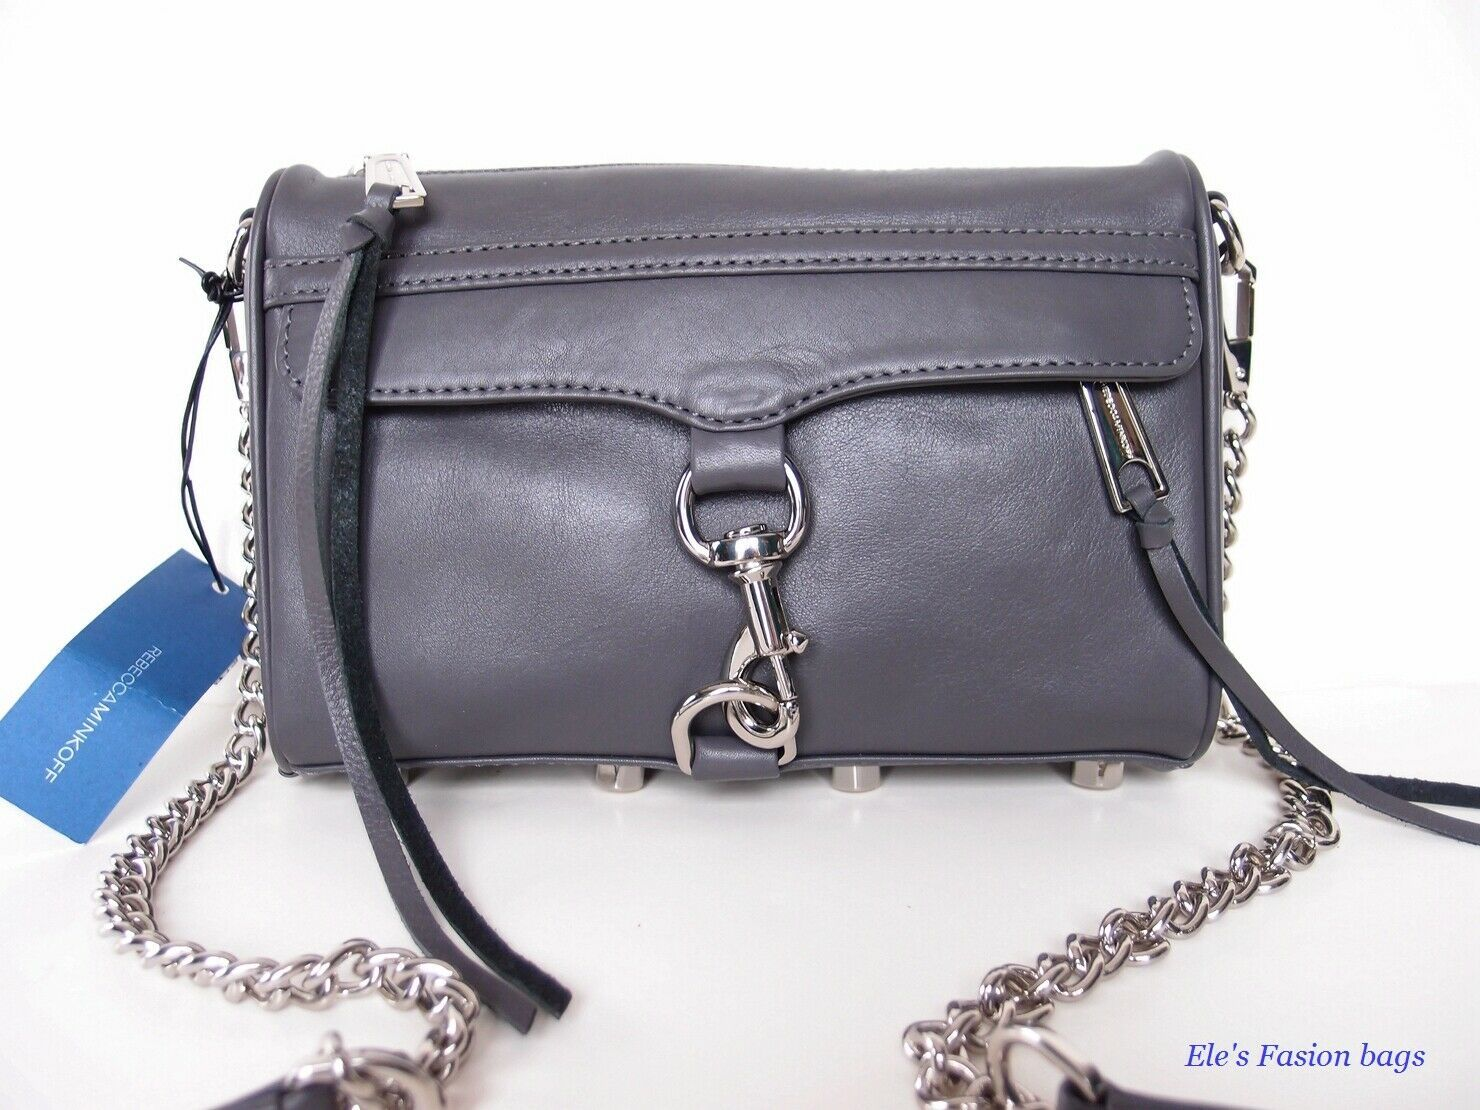 Primary image for NWT Rebecca Minkoff Mini MAC Leather Crossbody Bag CHARCOAL GREY $195+ AUTHENTIC